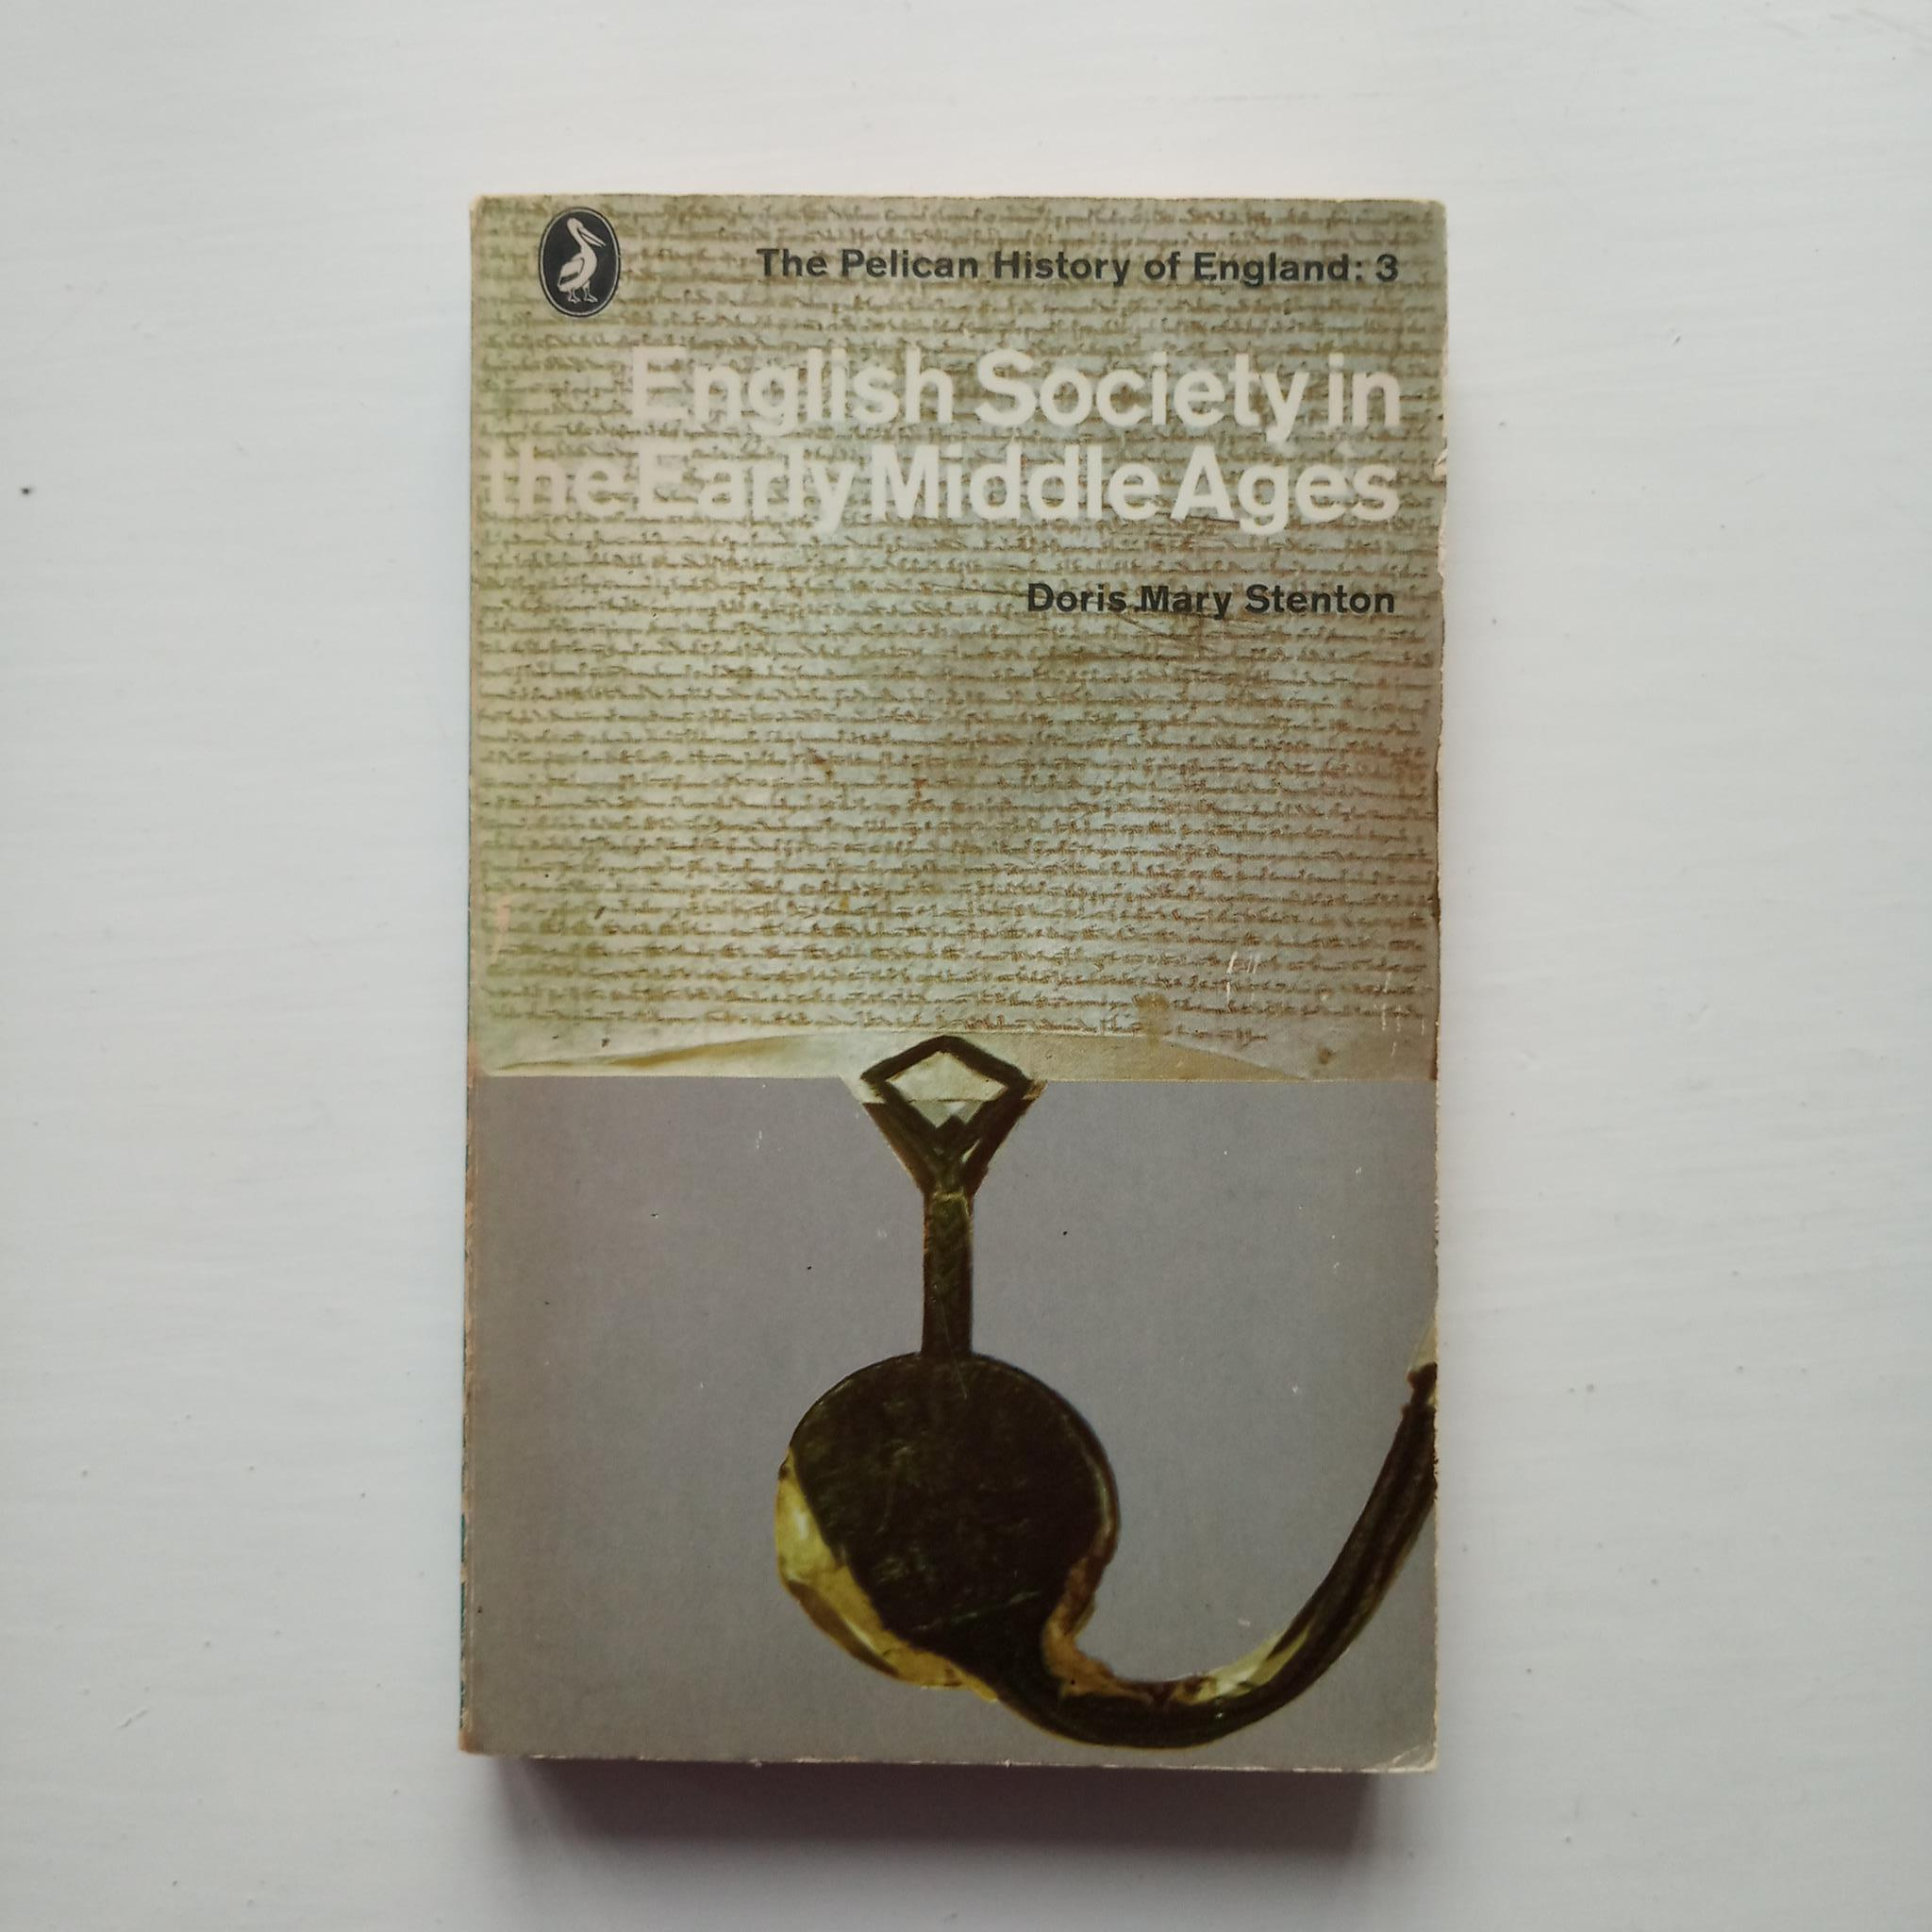 English Society in the Early Middle Ages (1066-1307) by Doris Mary Stenton